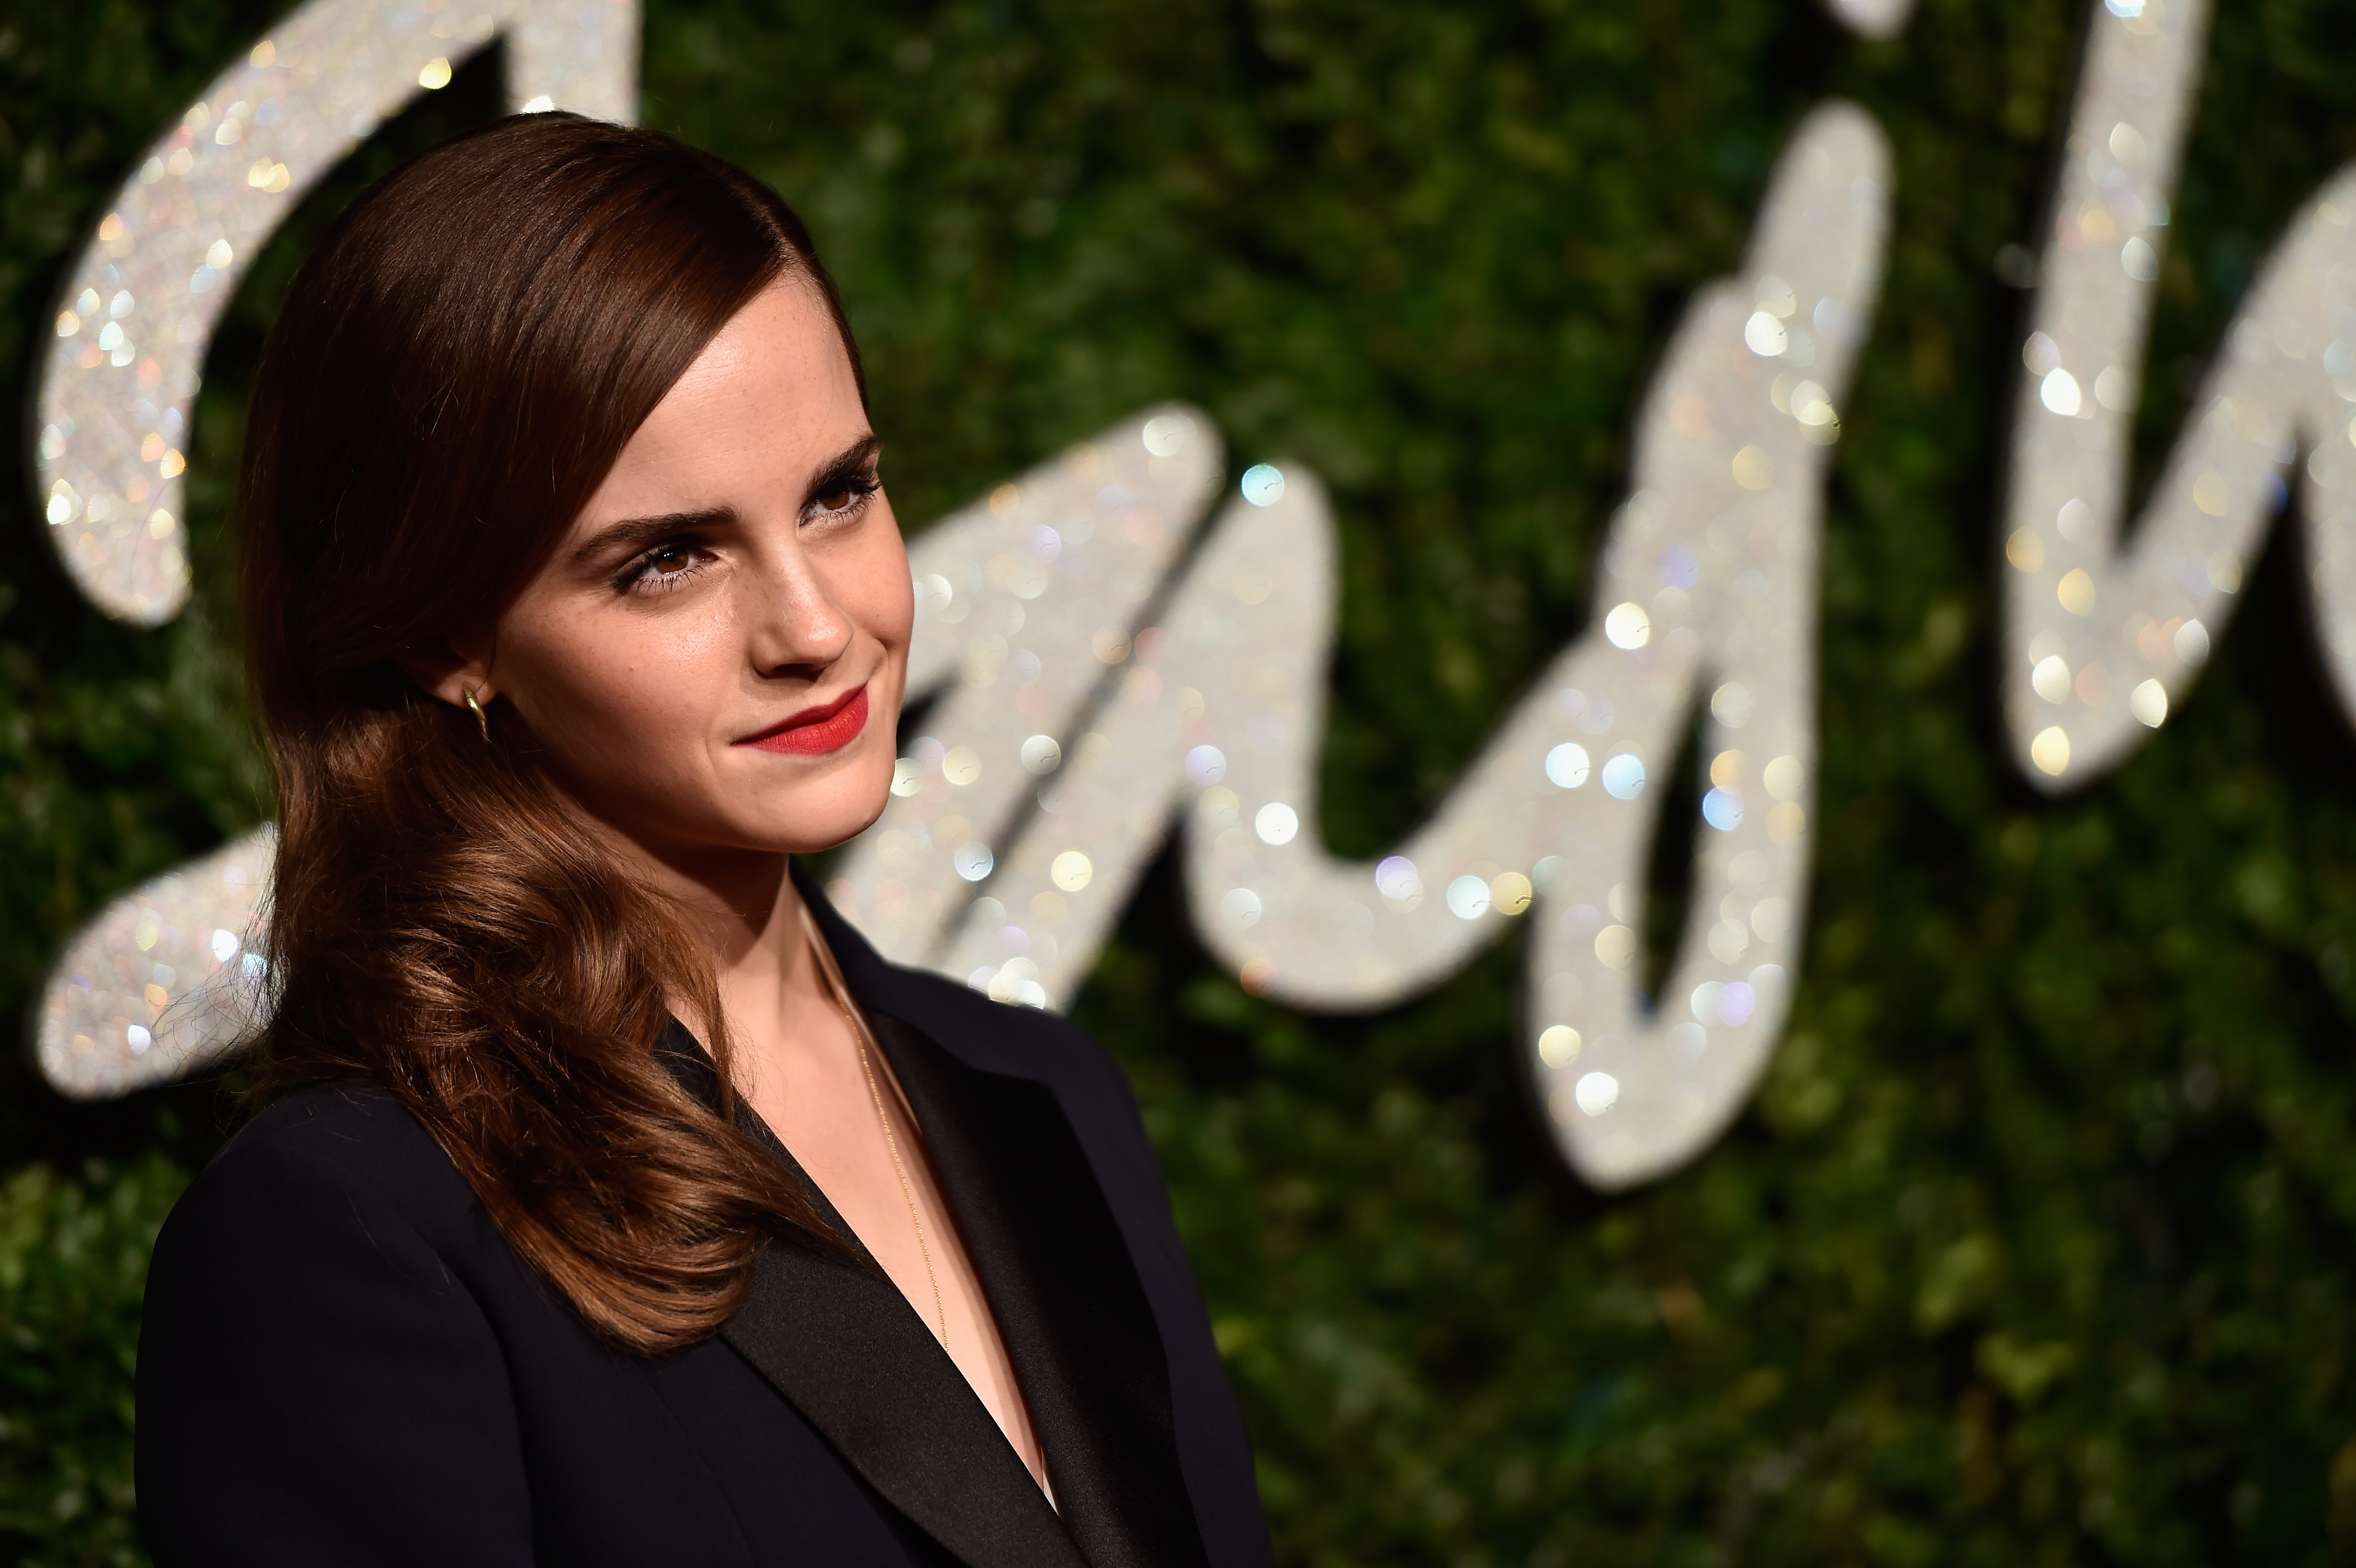 GettyImages 459788190 Emma Watson Breasts And Nipples Pics Surface Online, Lawyers Not Happy